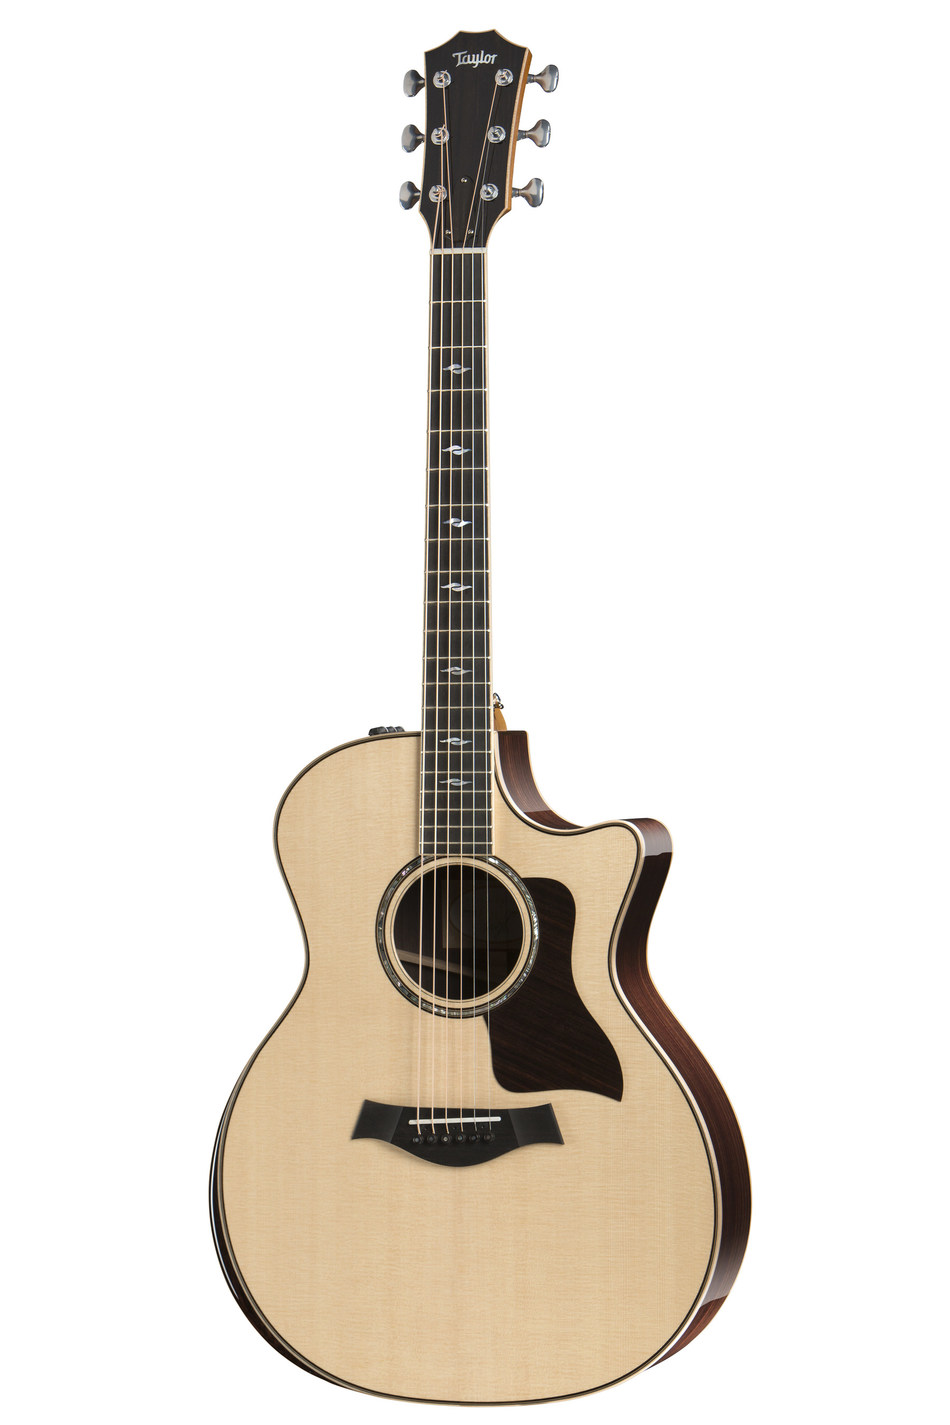 Taylor Guitars' New 800 Deluxe Series Adds New, Premium Features In Three New Models